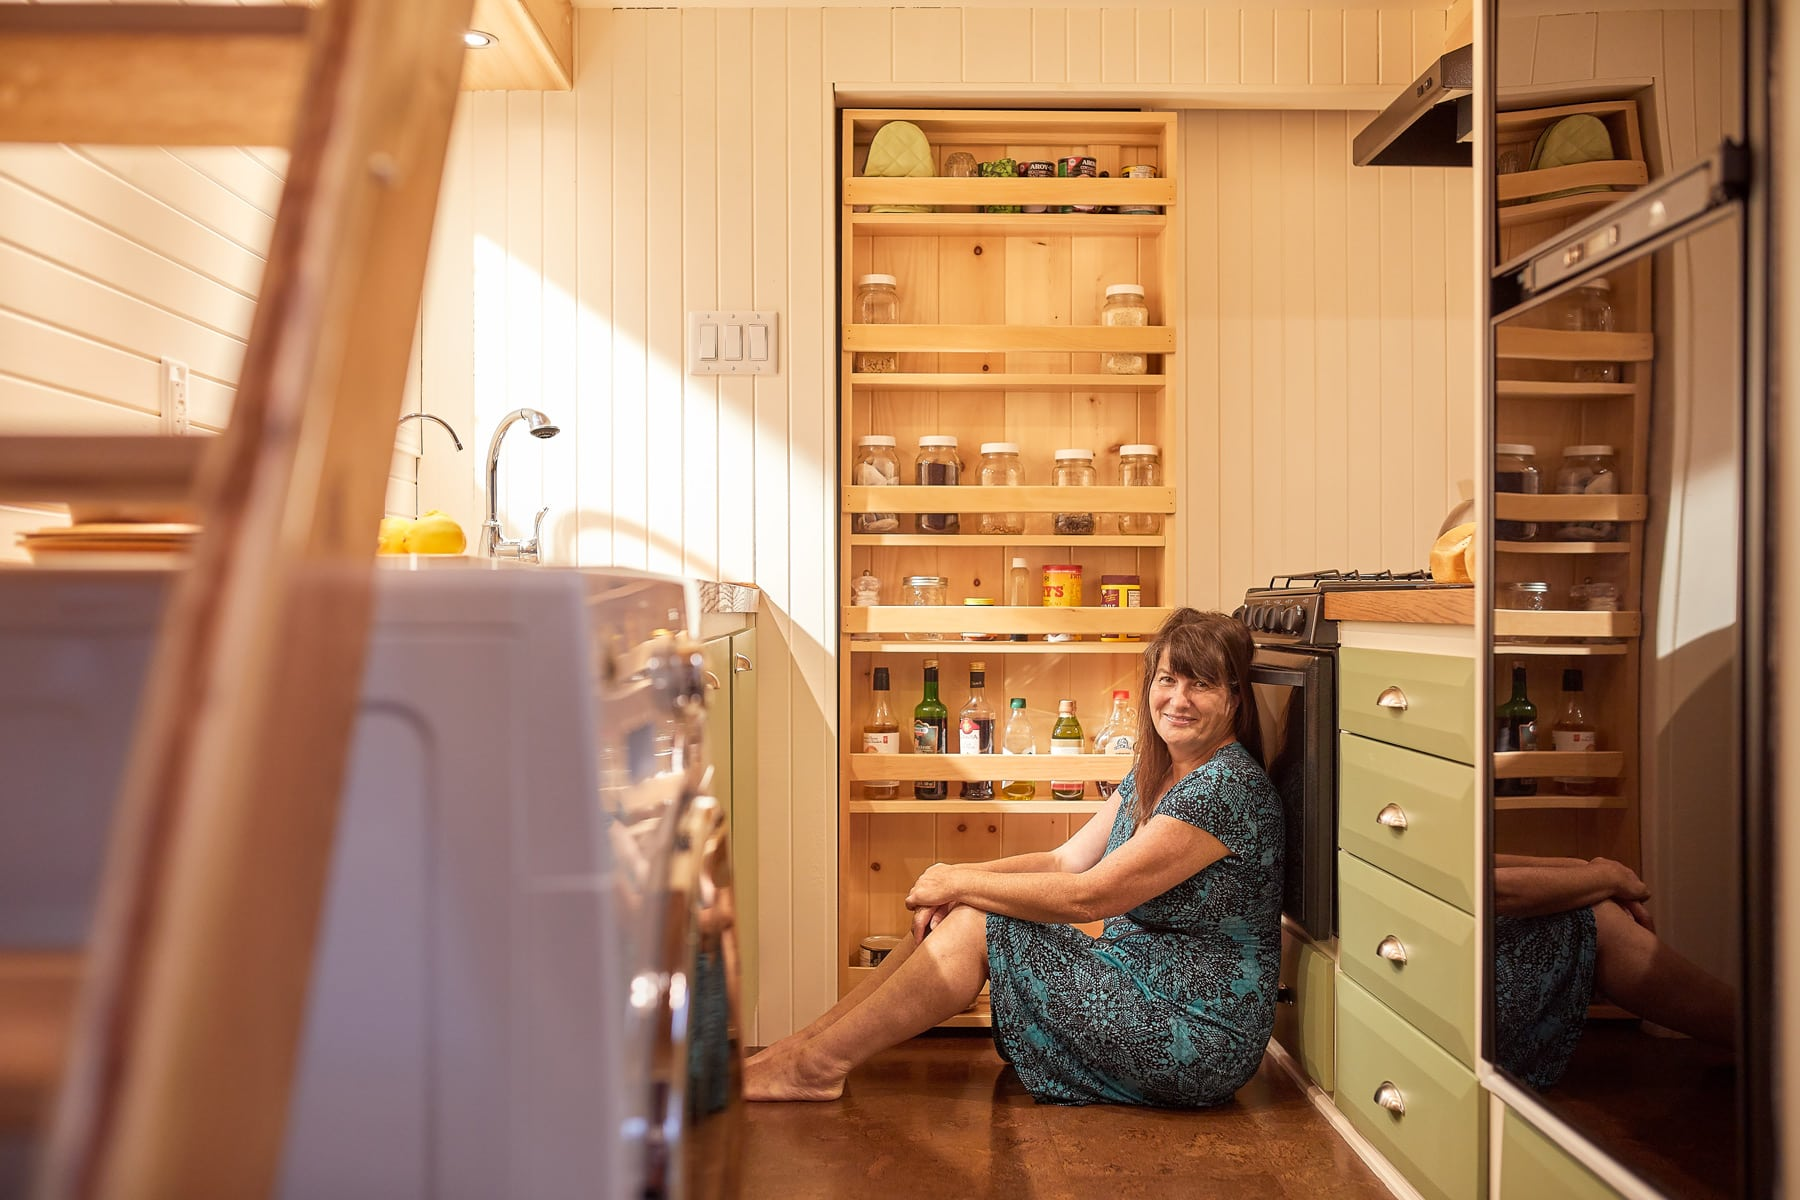 Christine McIntosh inside her tiny home. Photo: Justin Van Leeuwen